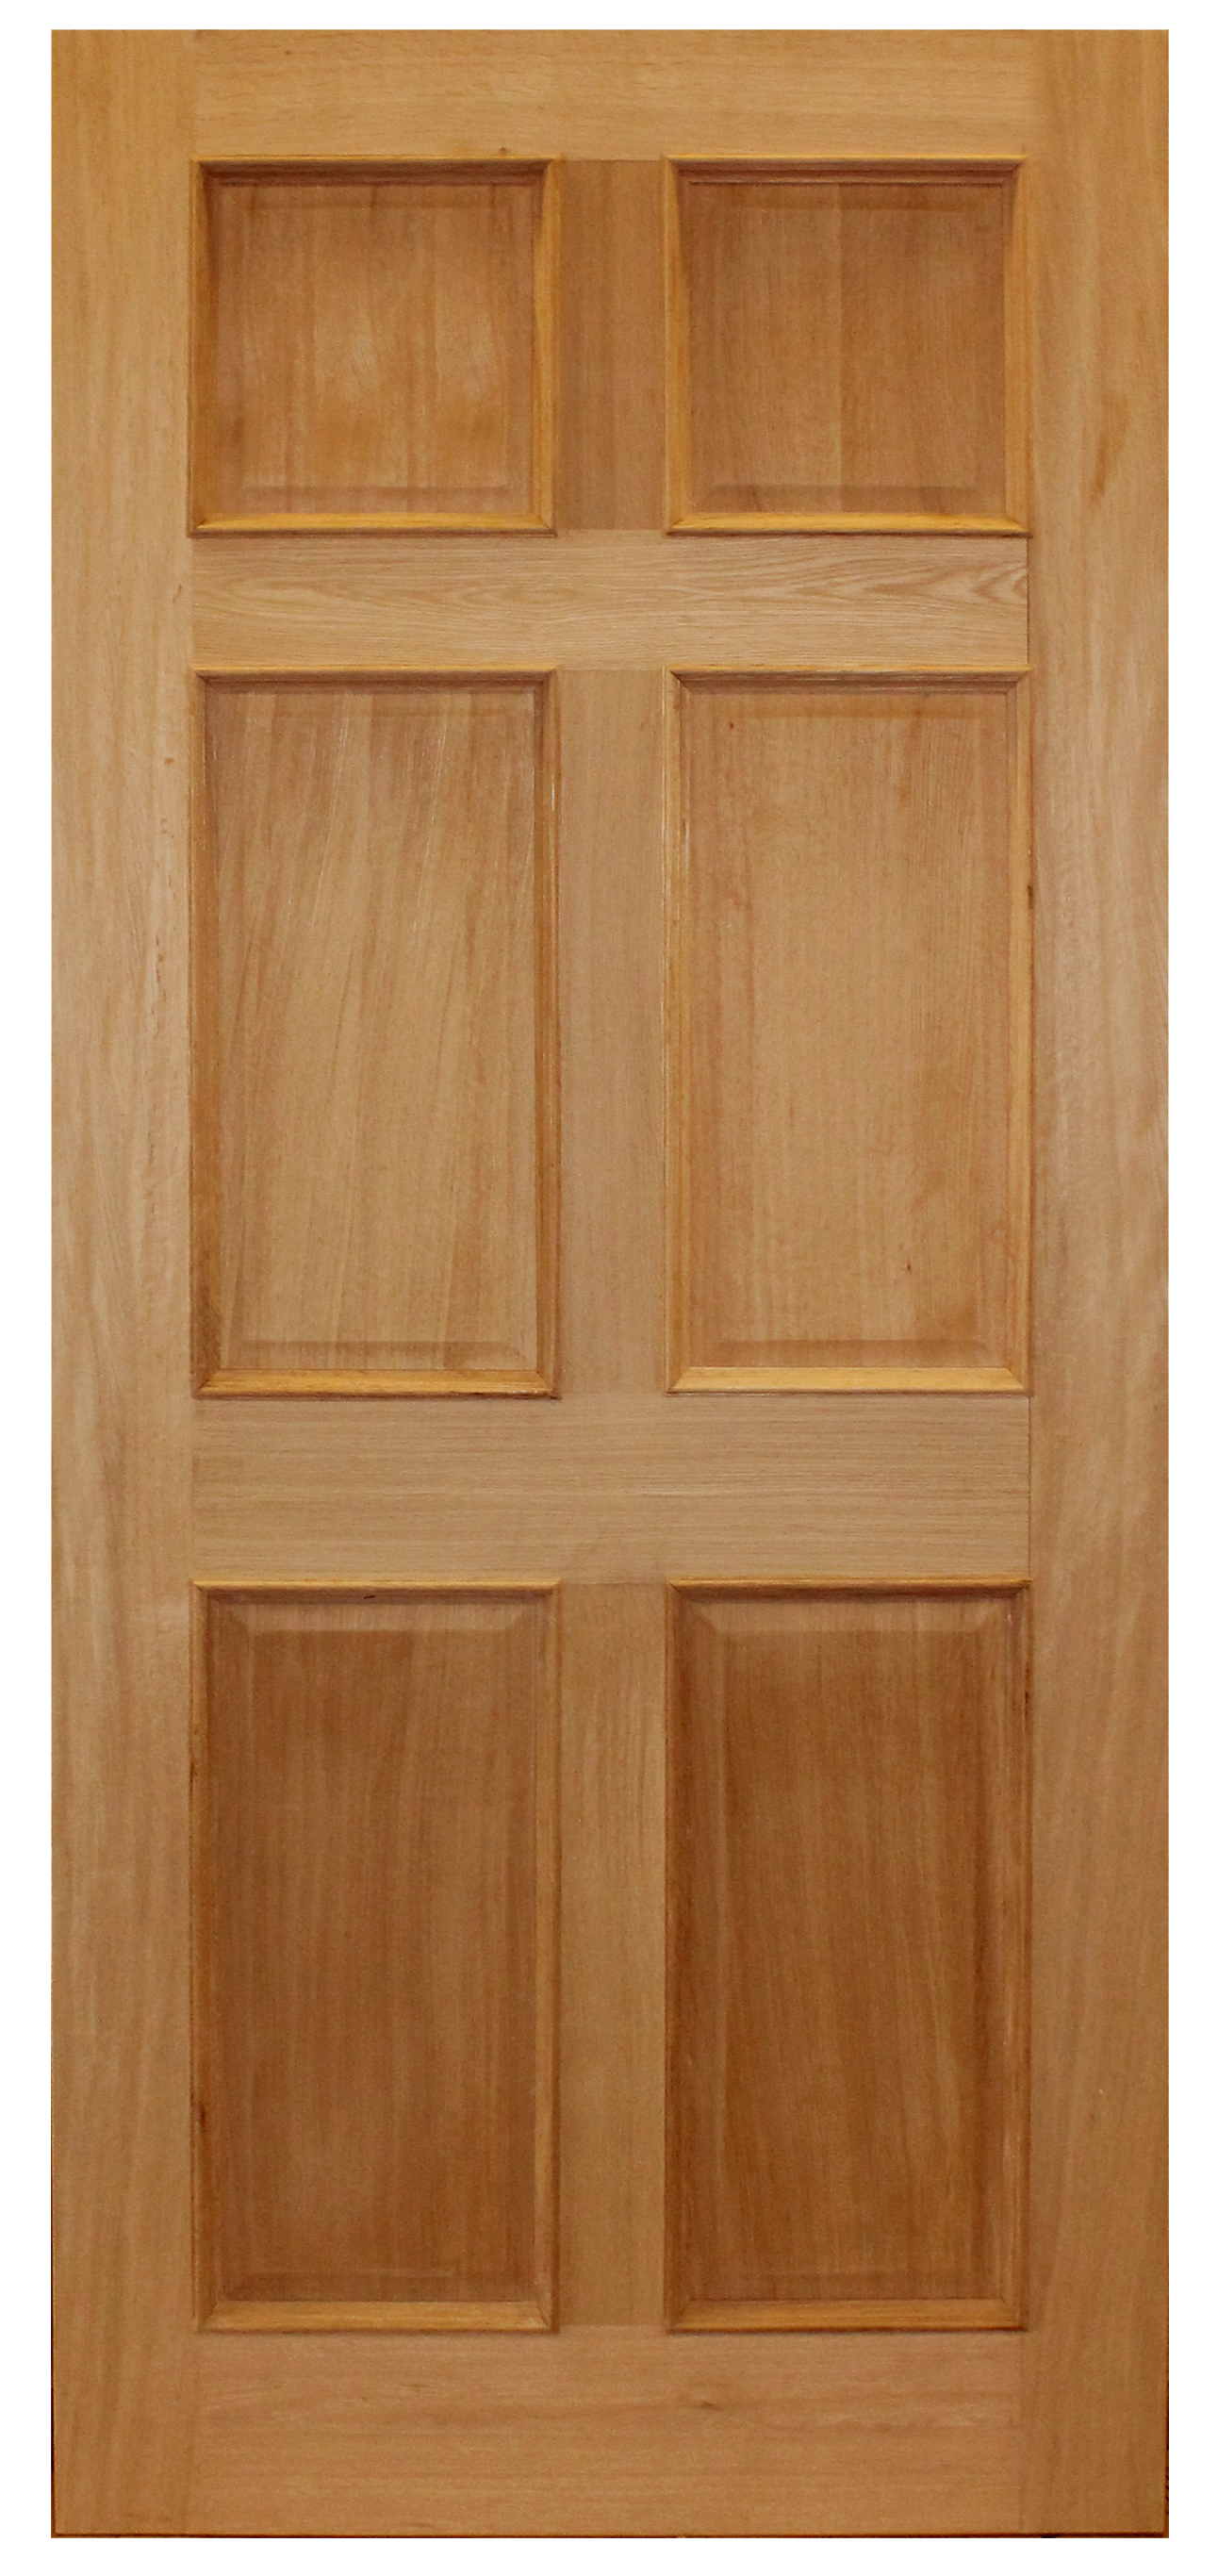 Door Png Transparent Image 377